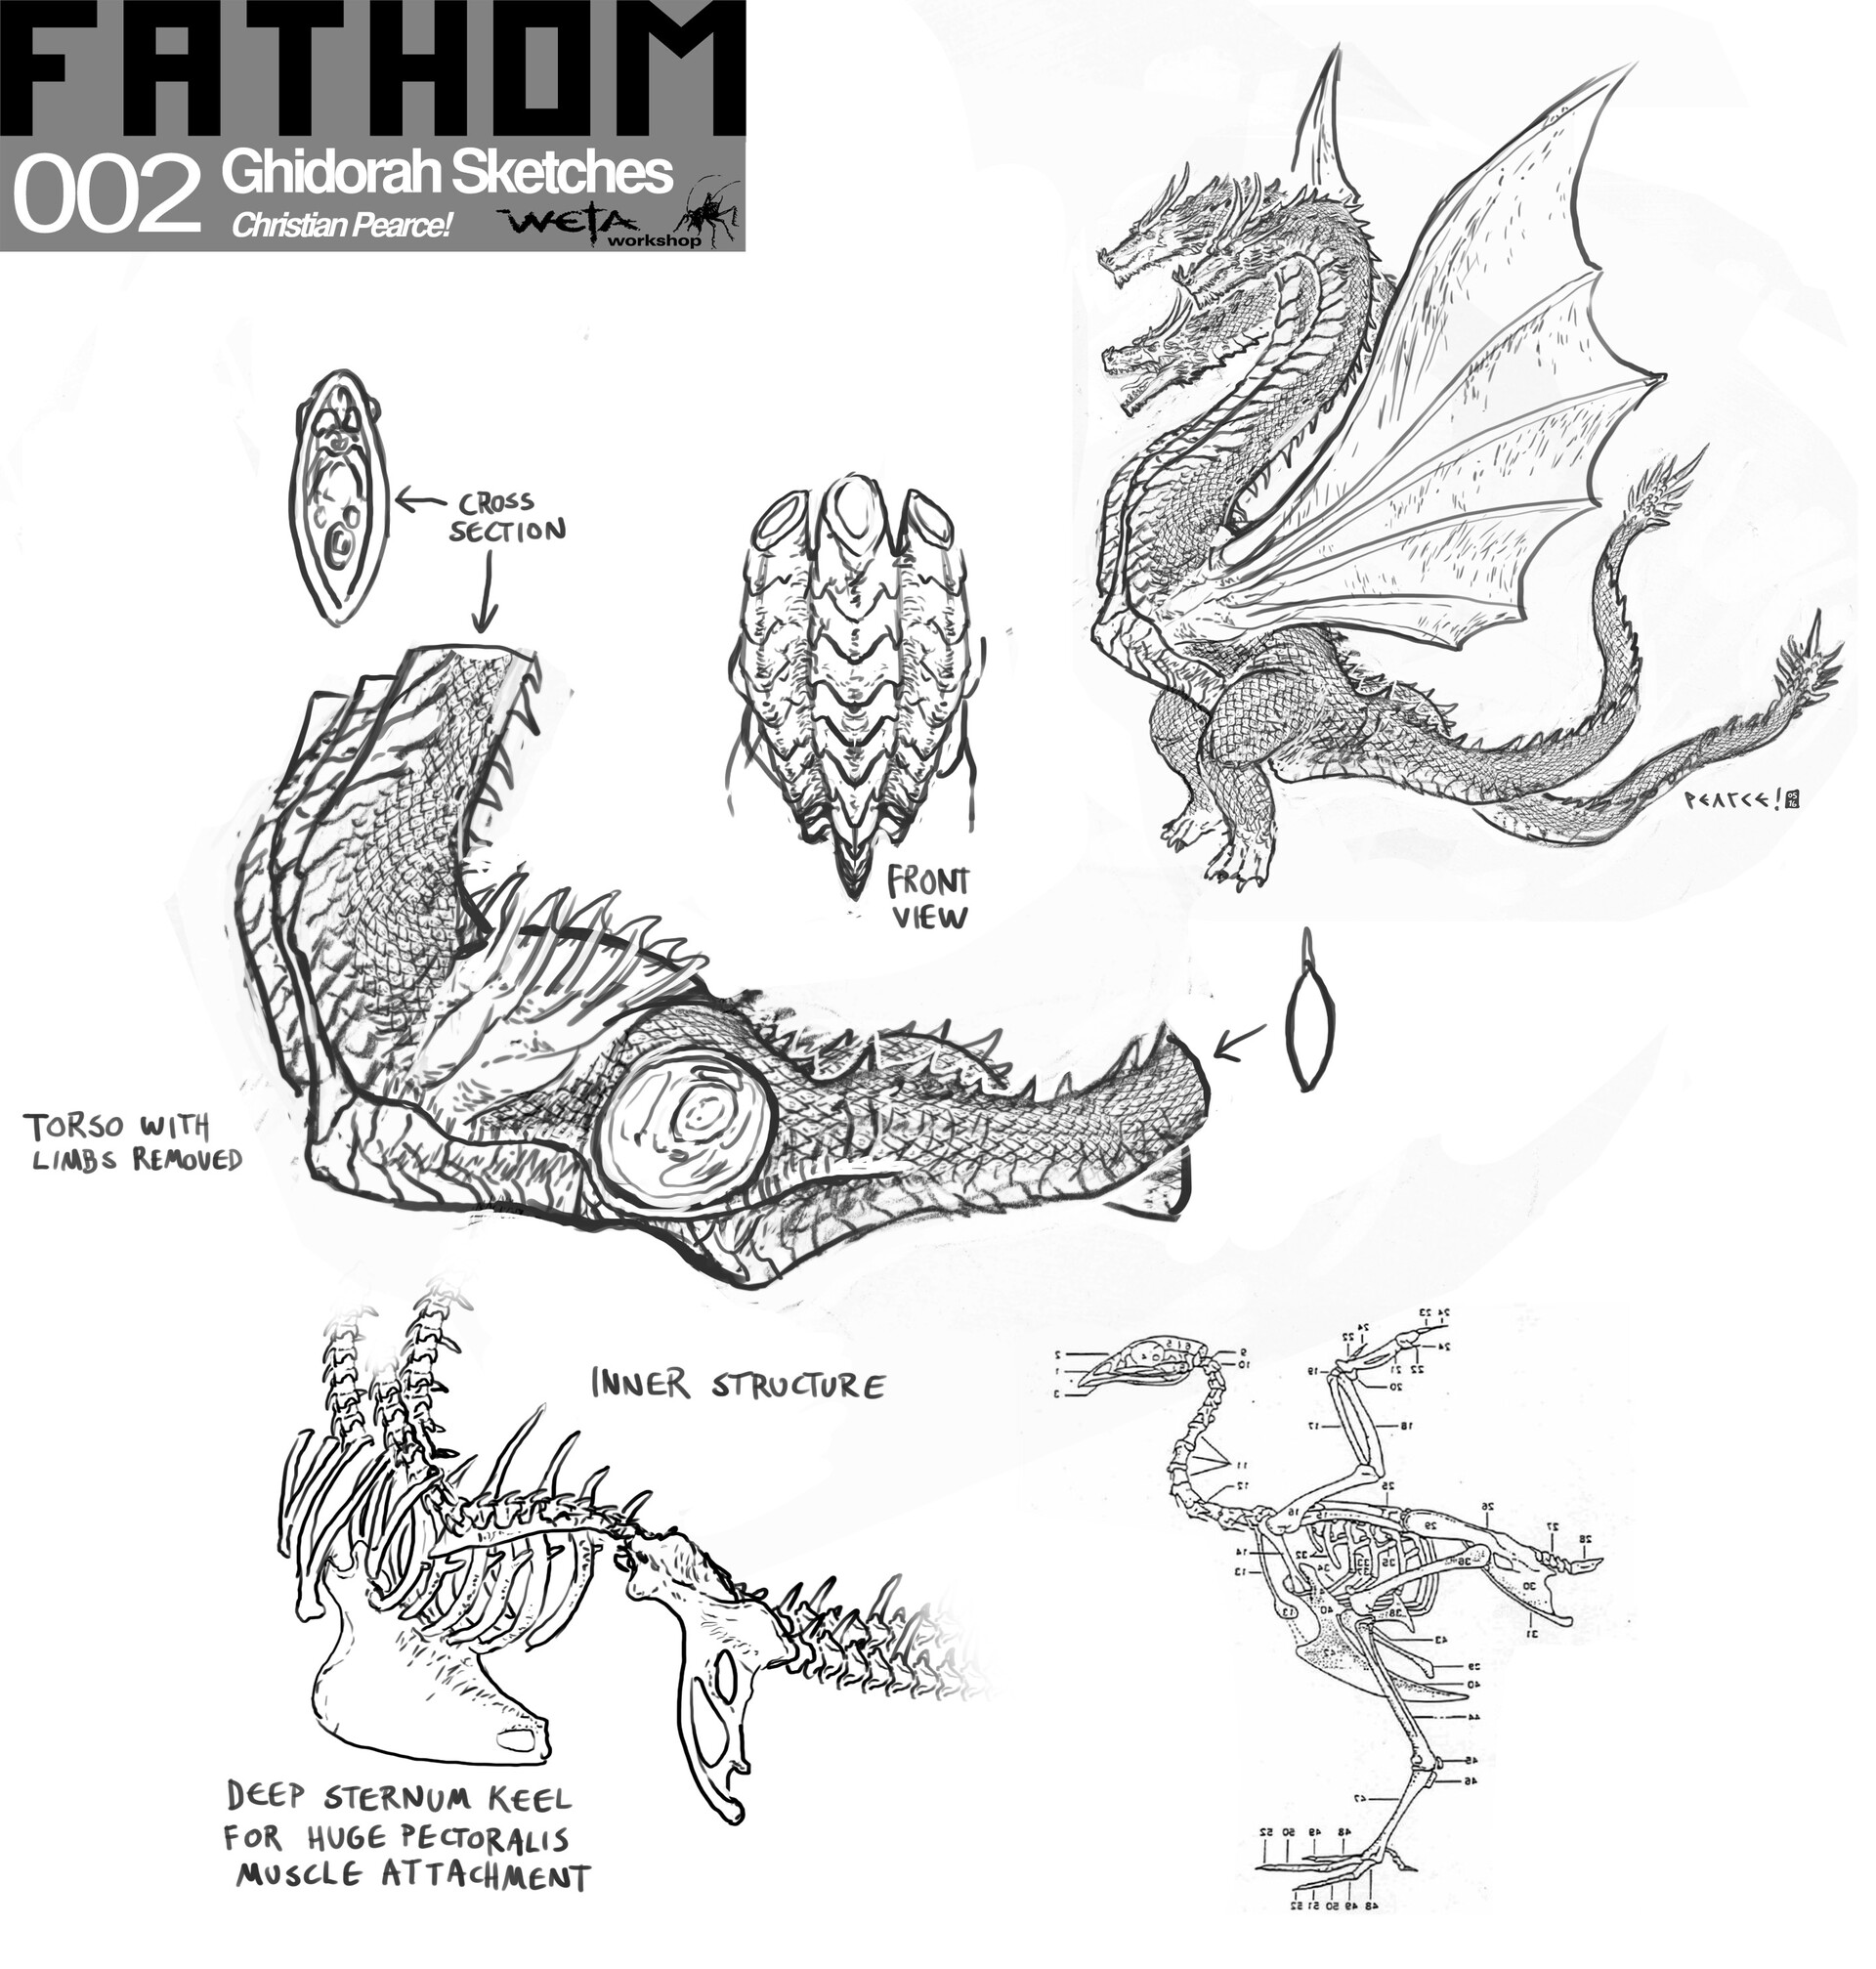 Weta workshop design studio 002 ftm ghidoskel